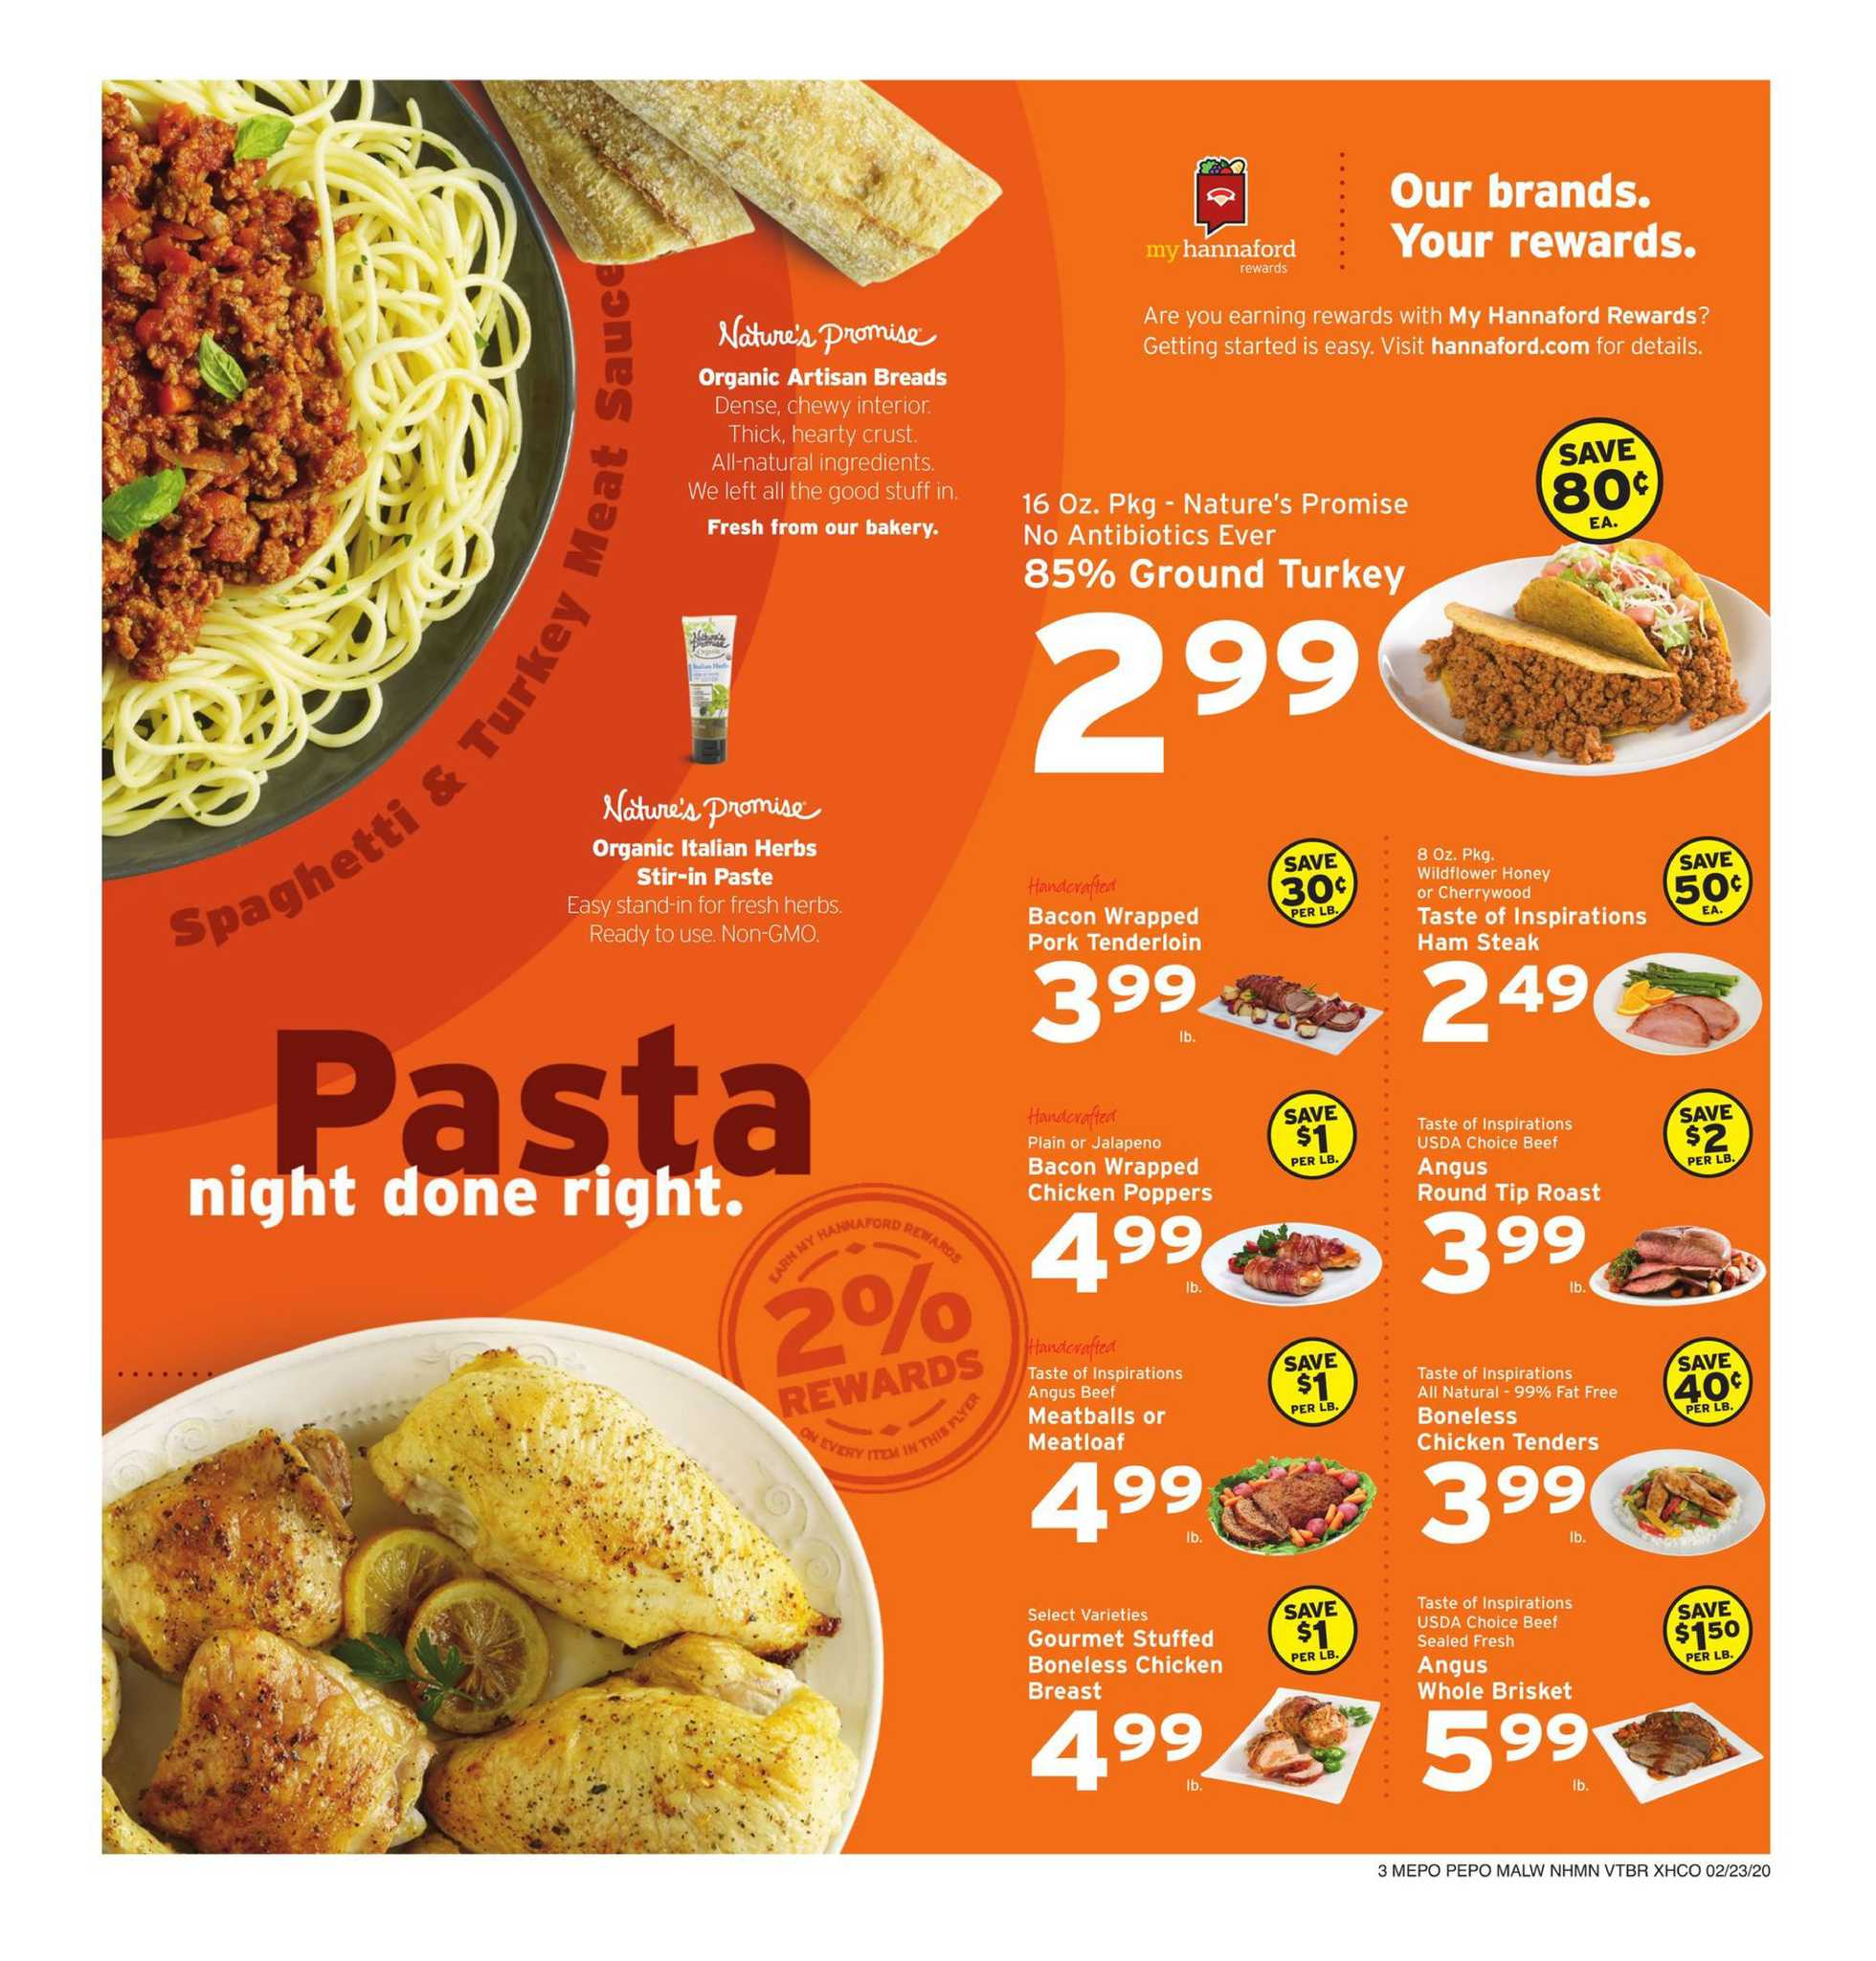 Hannaford - promo starting from 02/23/20 to 02/29/20 - page 3.